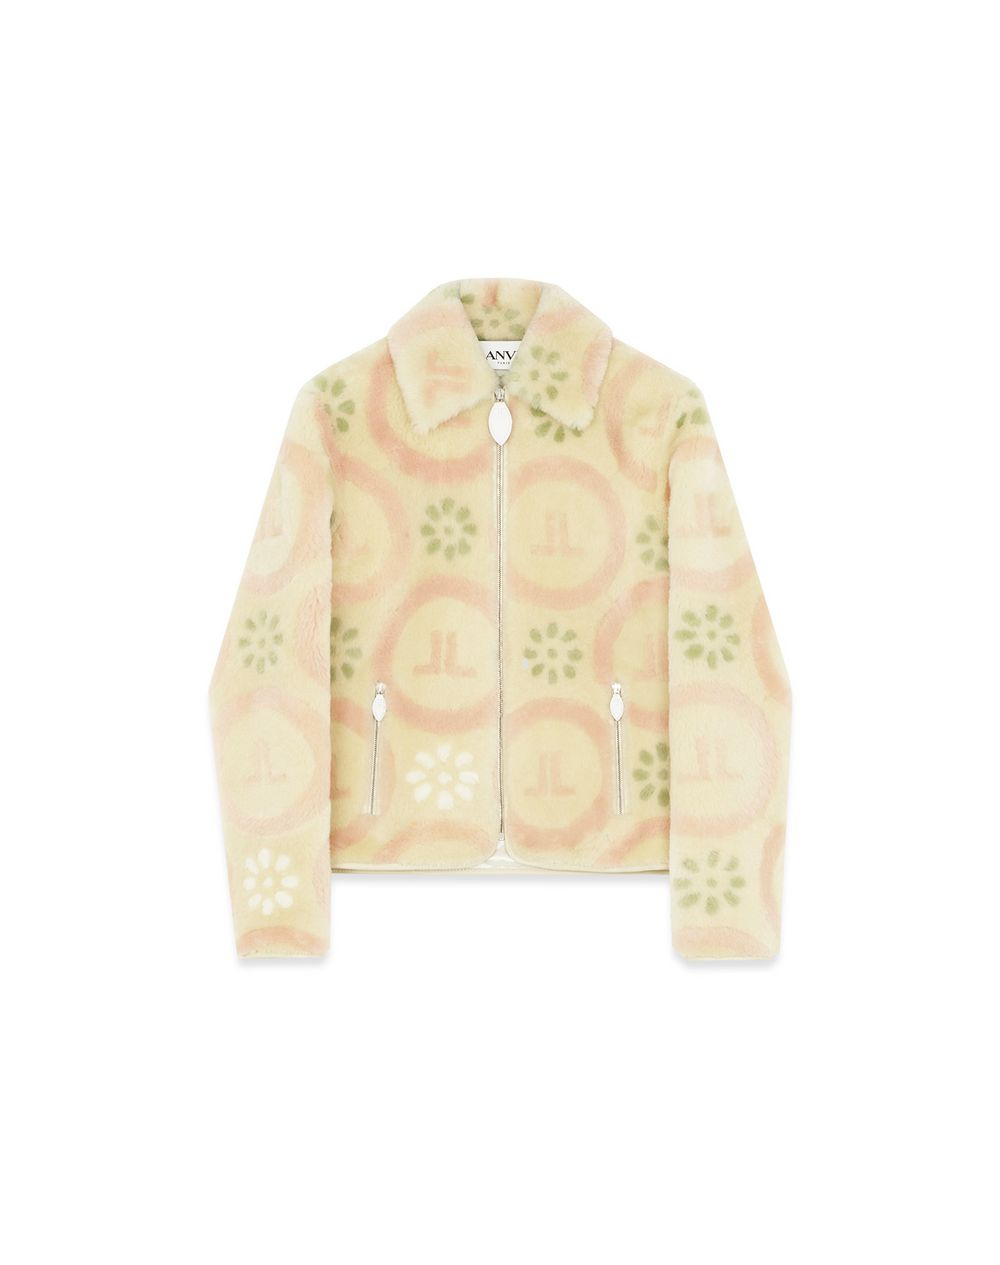 PRINTED SHEEP'S WOOL JACKET - Lanvin